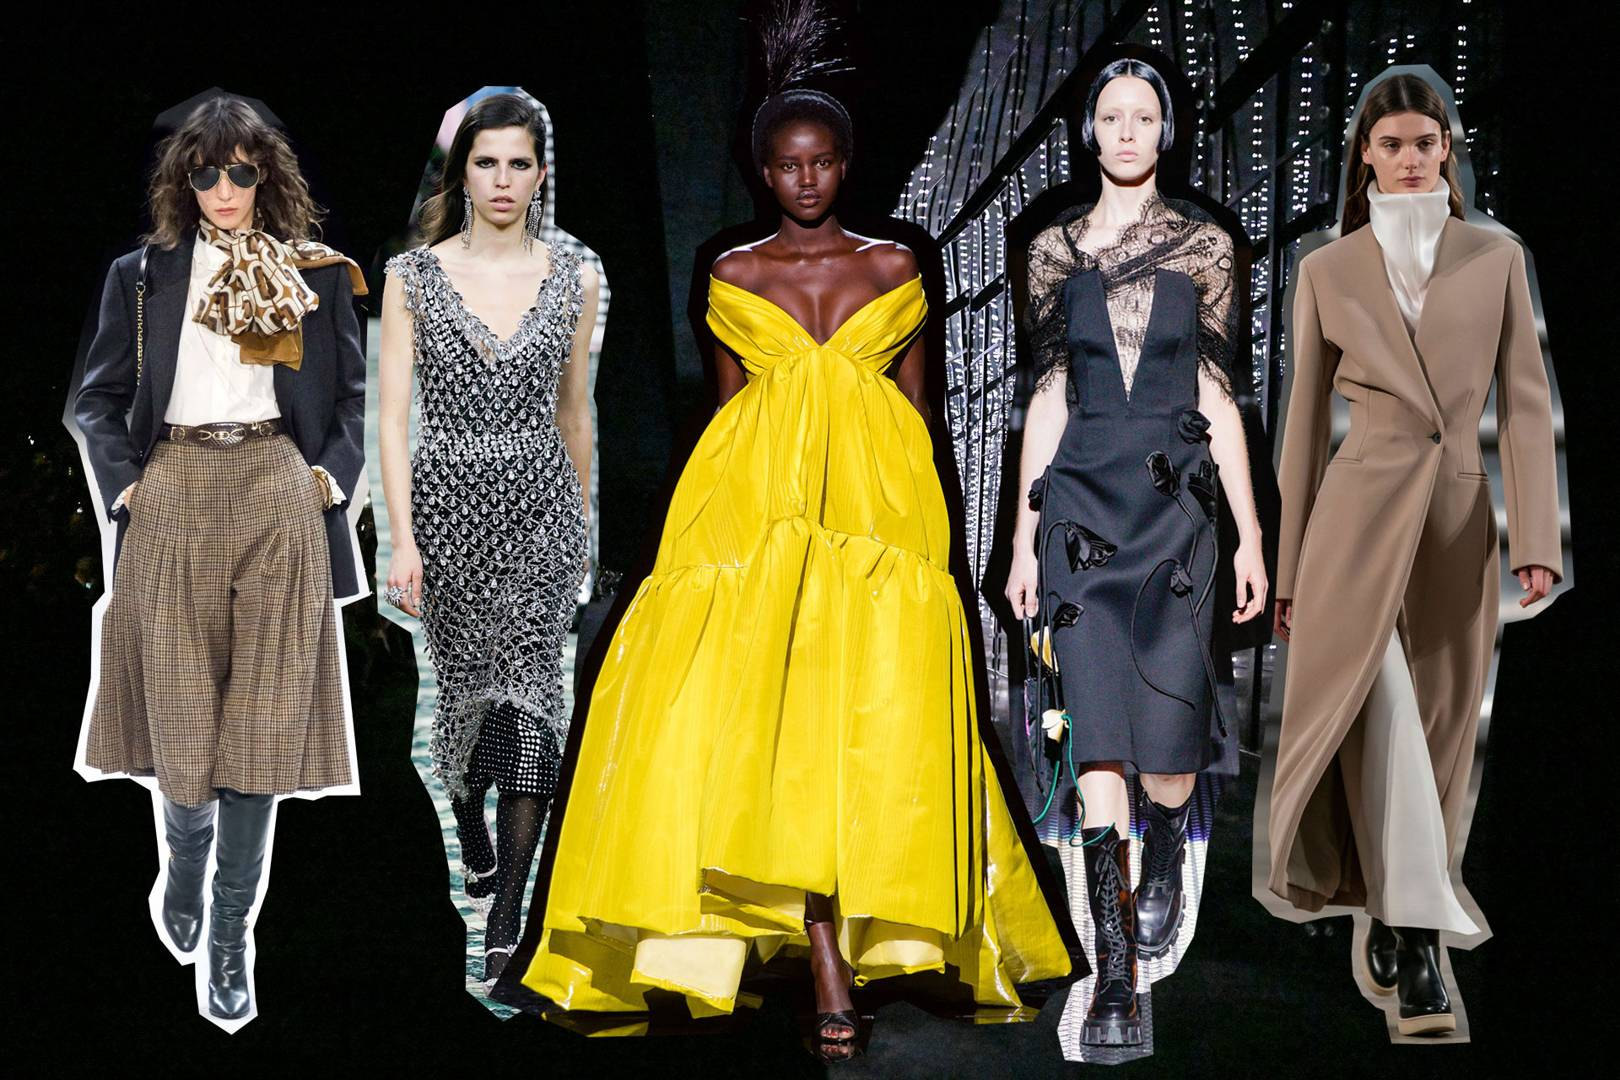 633cde79dff Autumn Winter 2019 Fashion Trends You Need To Know | British Vogue